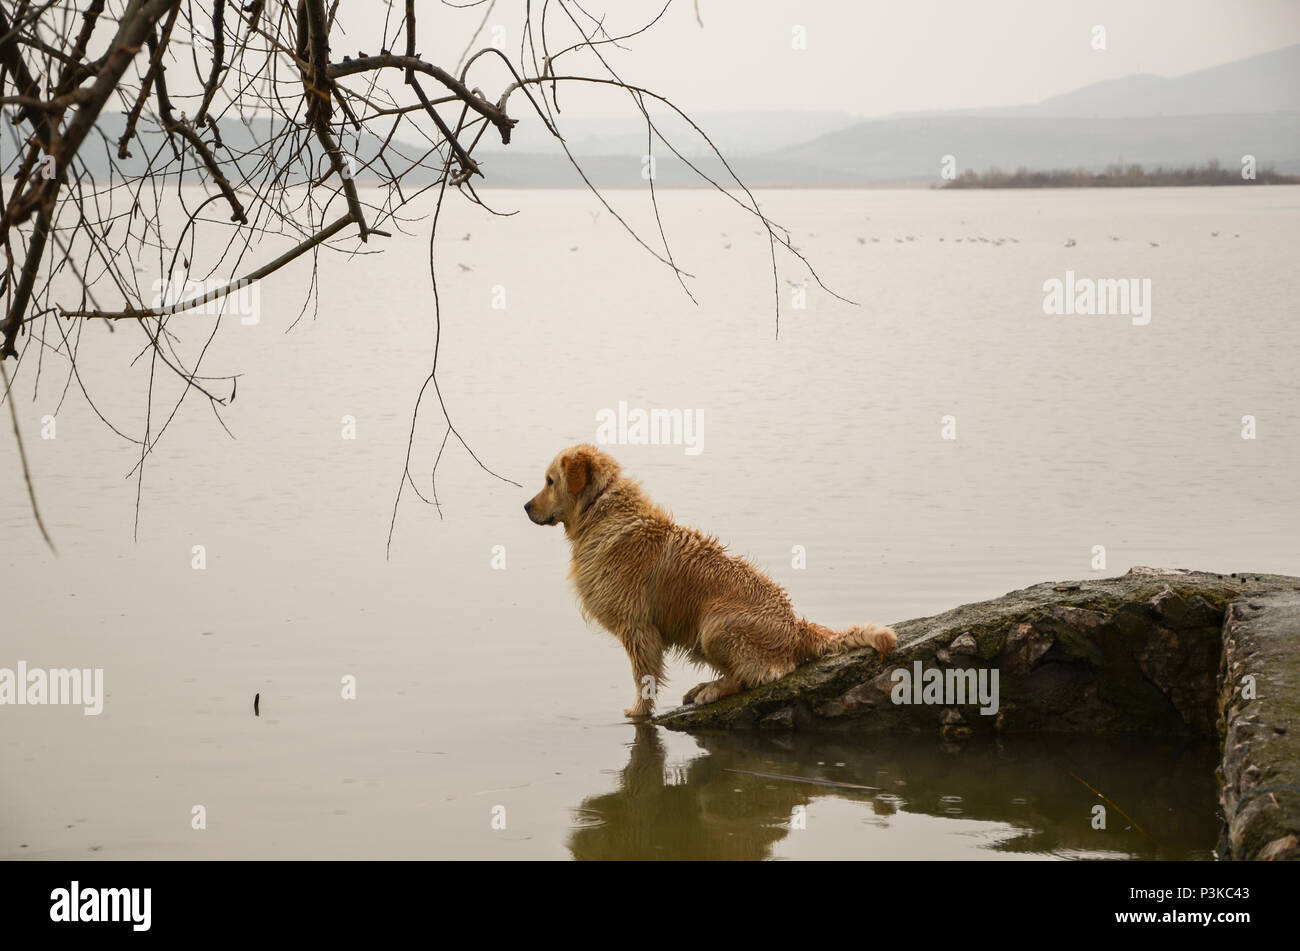 The dog is sitting on the rock next to the sea .It is looking the sea. - Stock Image